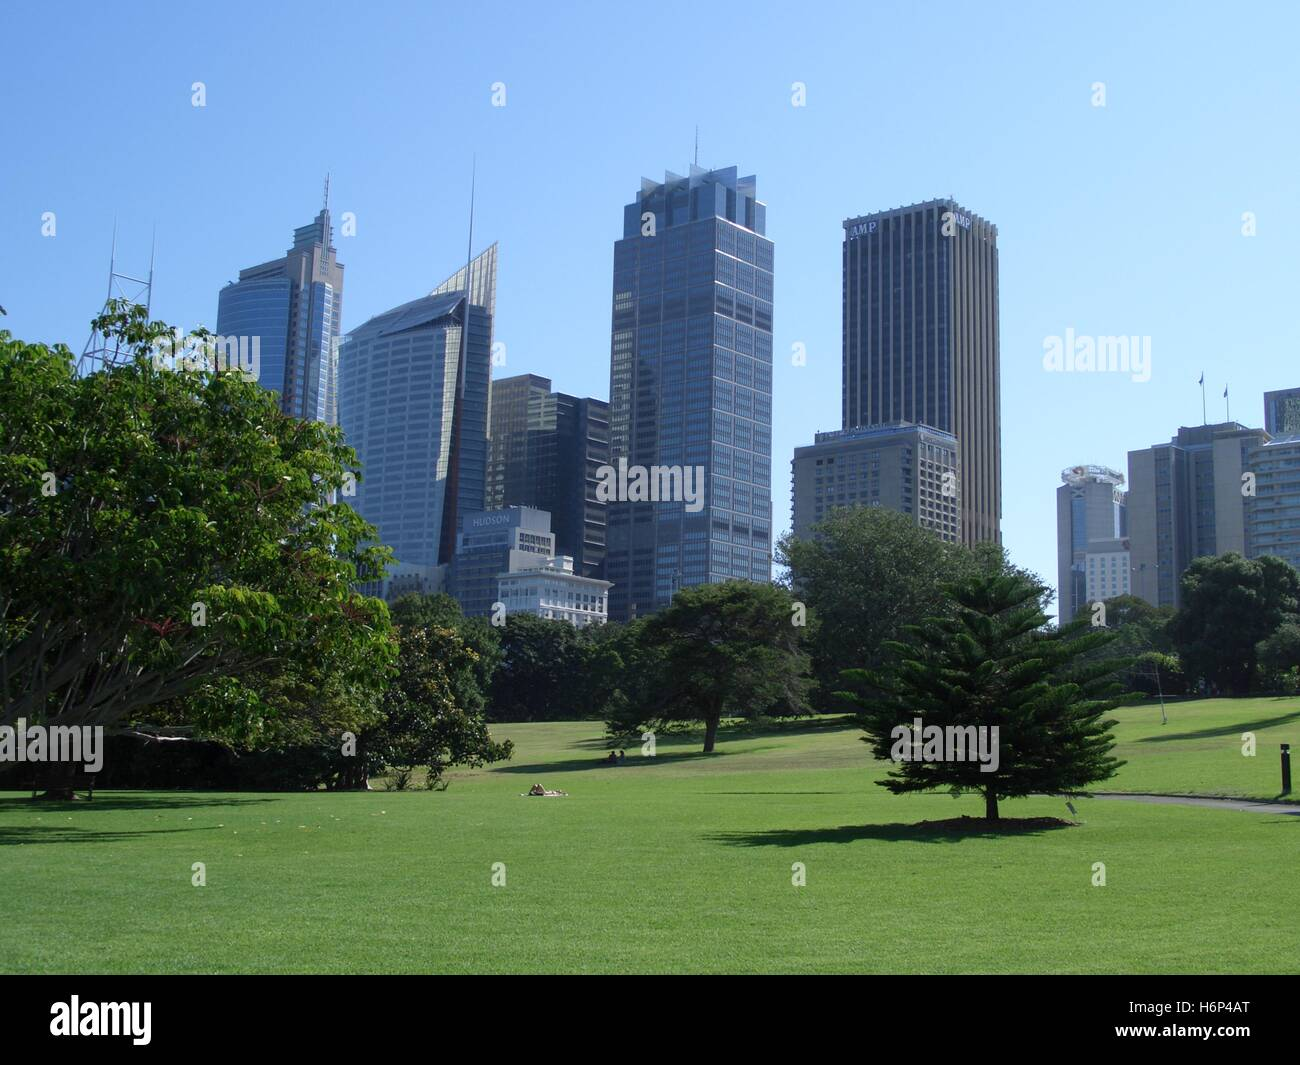 botanical garden with skyscrapers - Stock Image